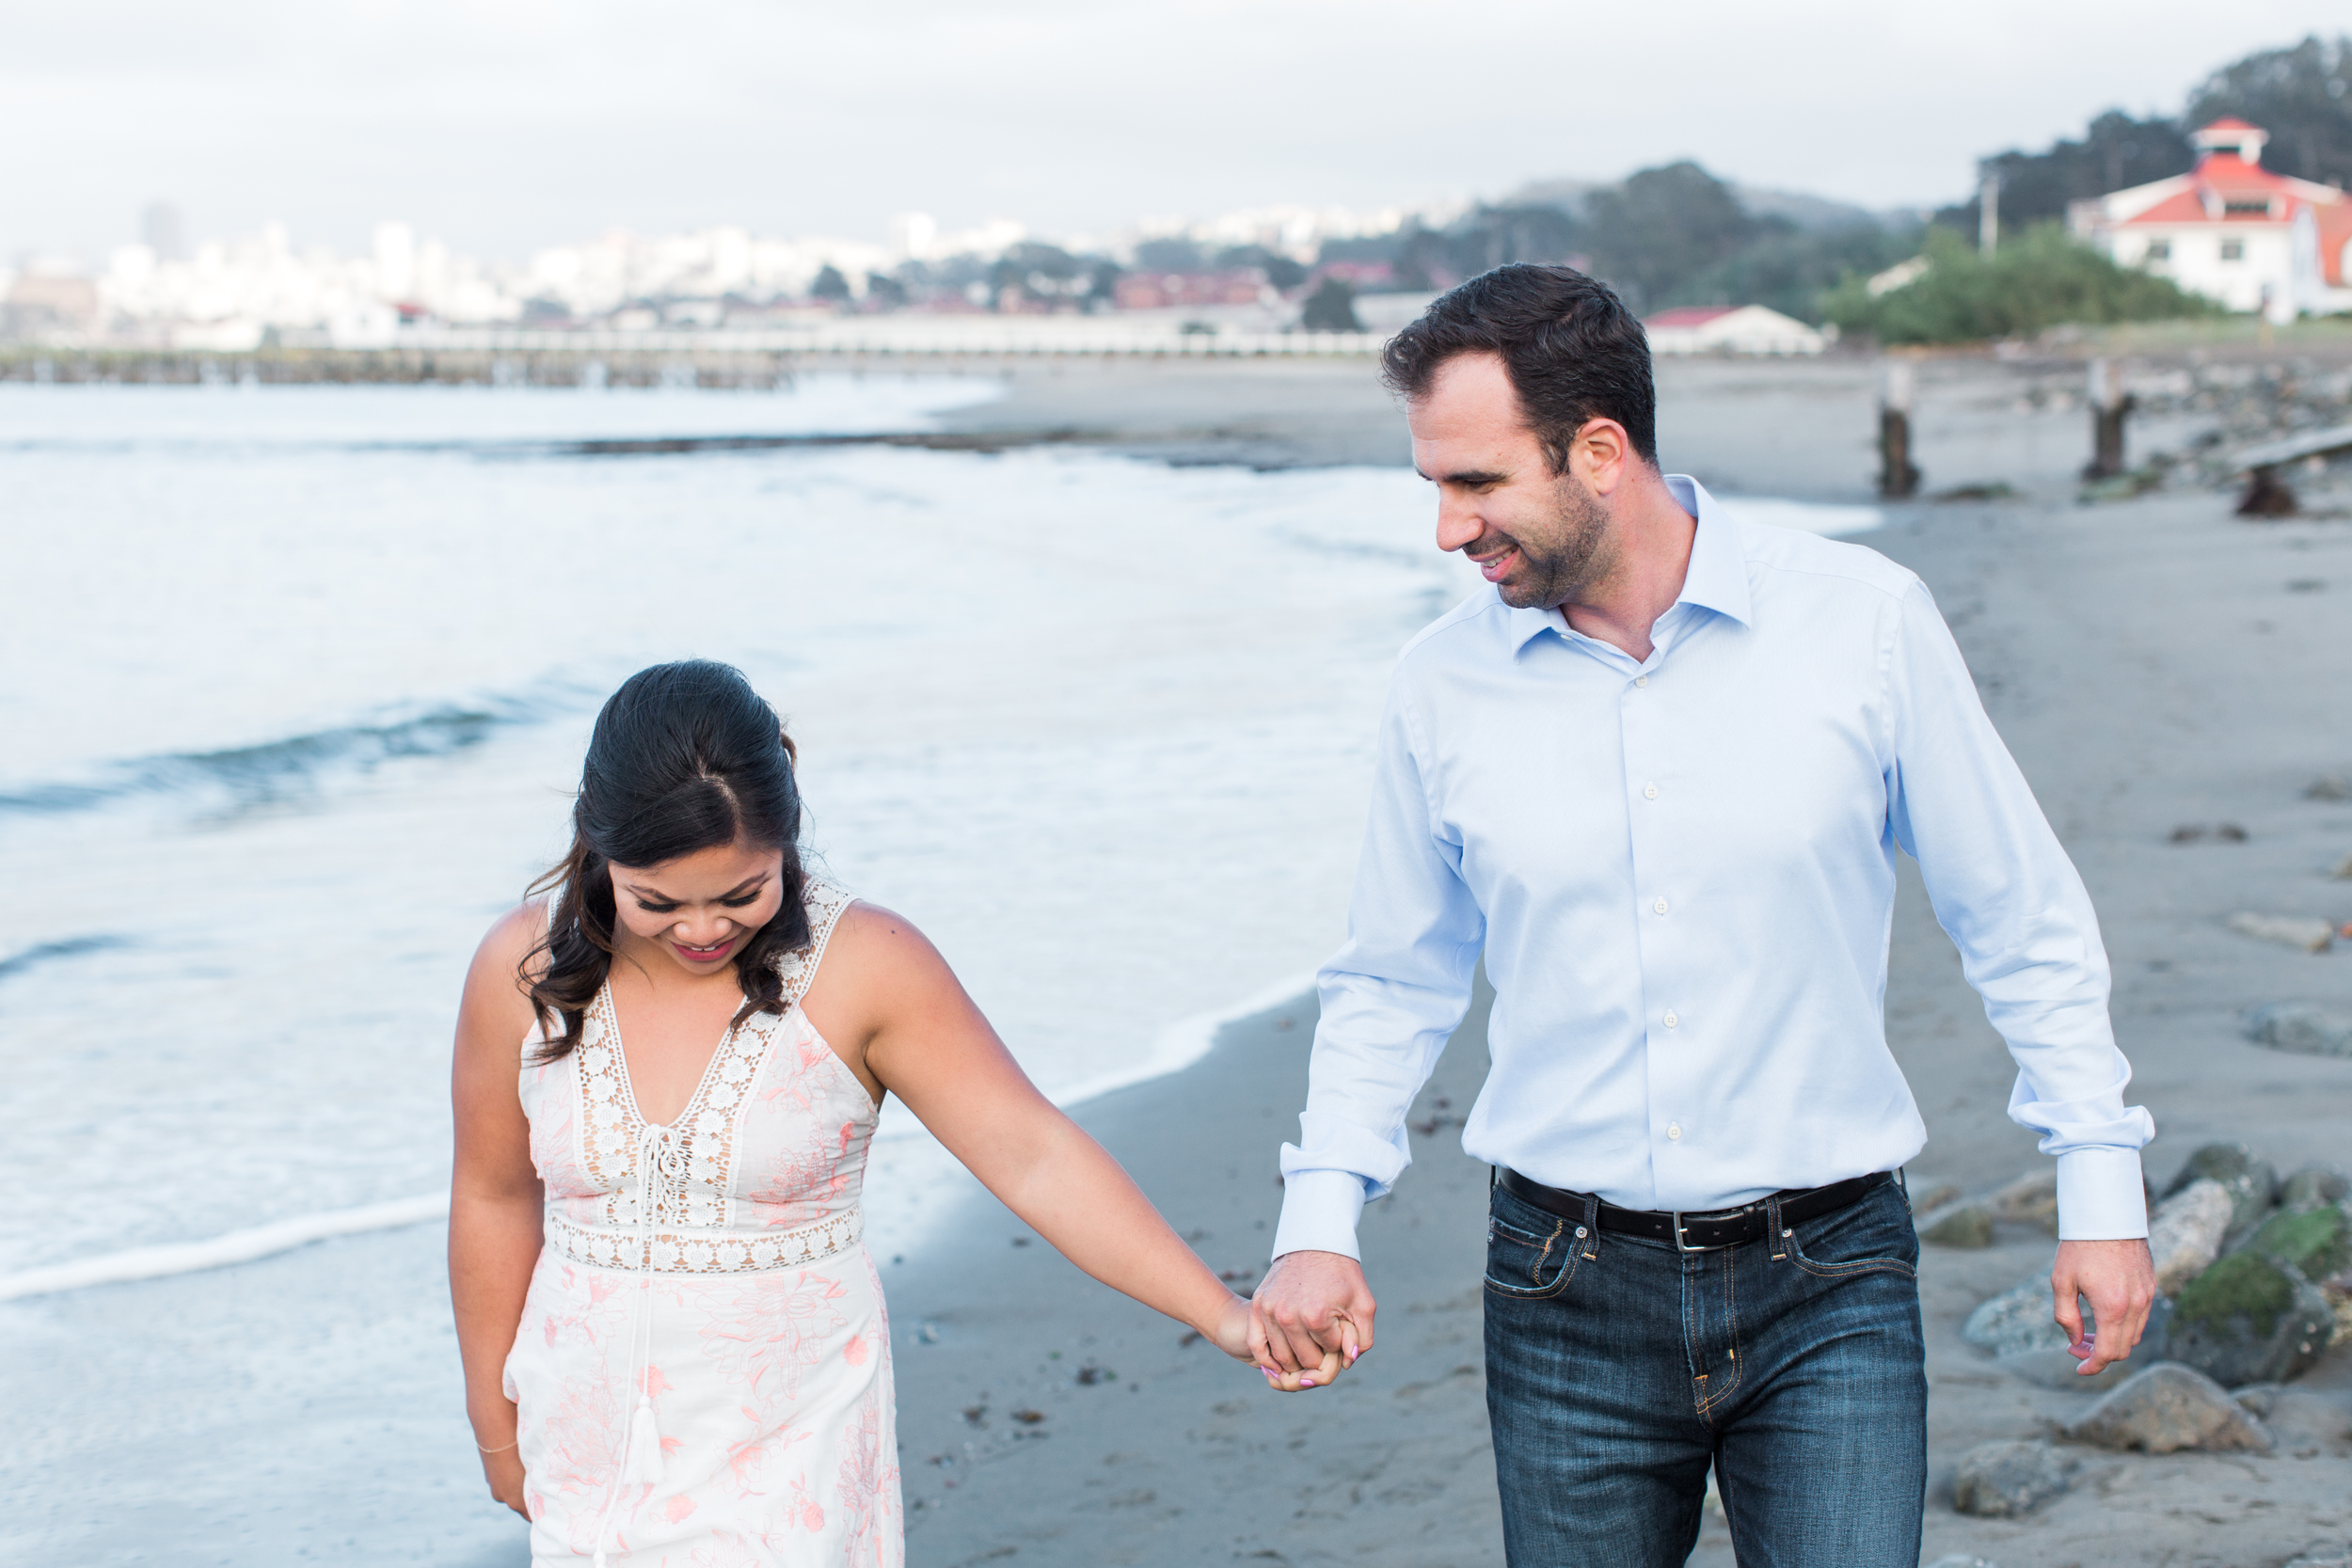 fort-point-pier-san-francisco-engagement-photography-1-4.jpg